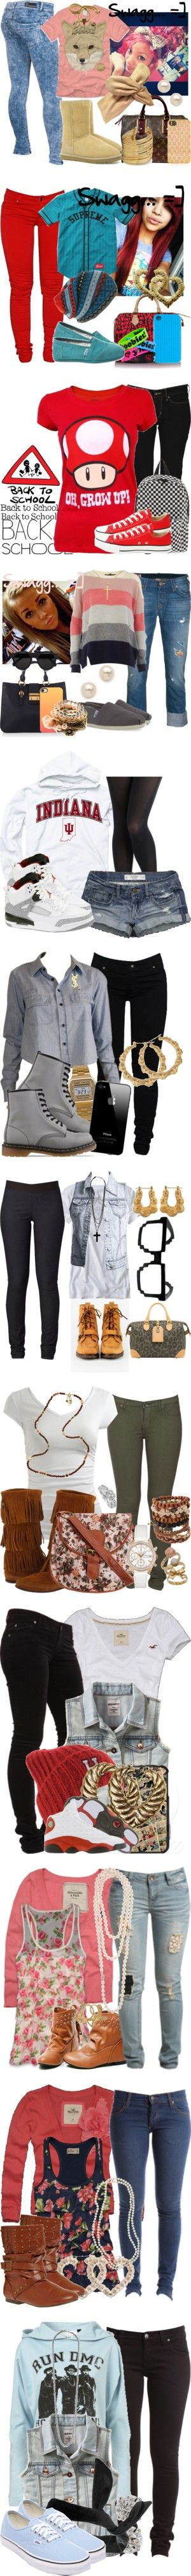 """Stuff I would wear to school (Part 2)"" by mizzstarburst ❤ liked on Polyvore"